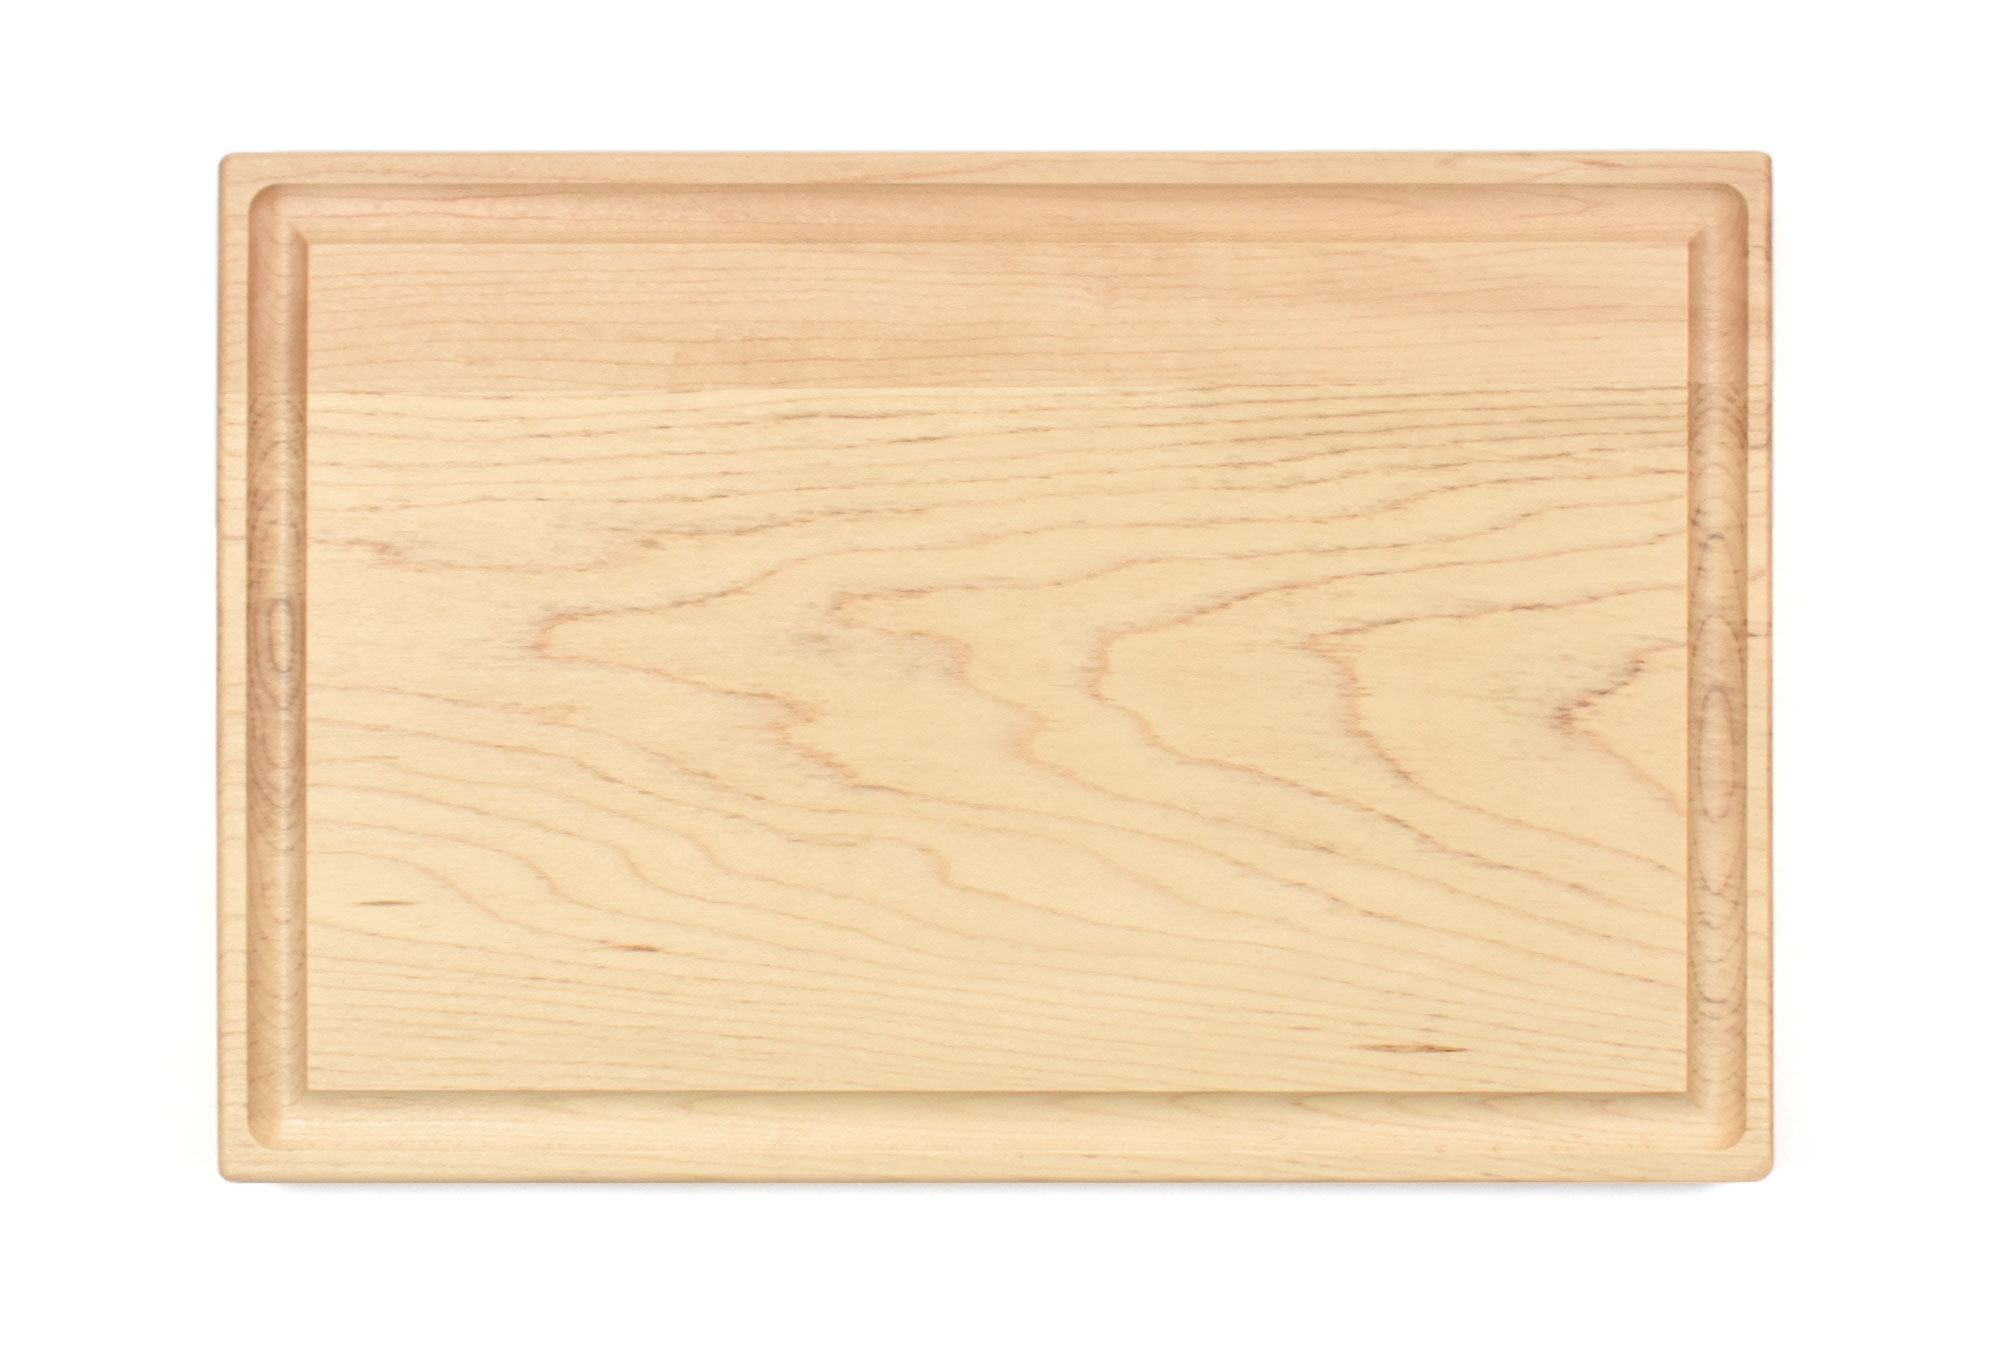 Maple small board with rounded edges and juice groove